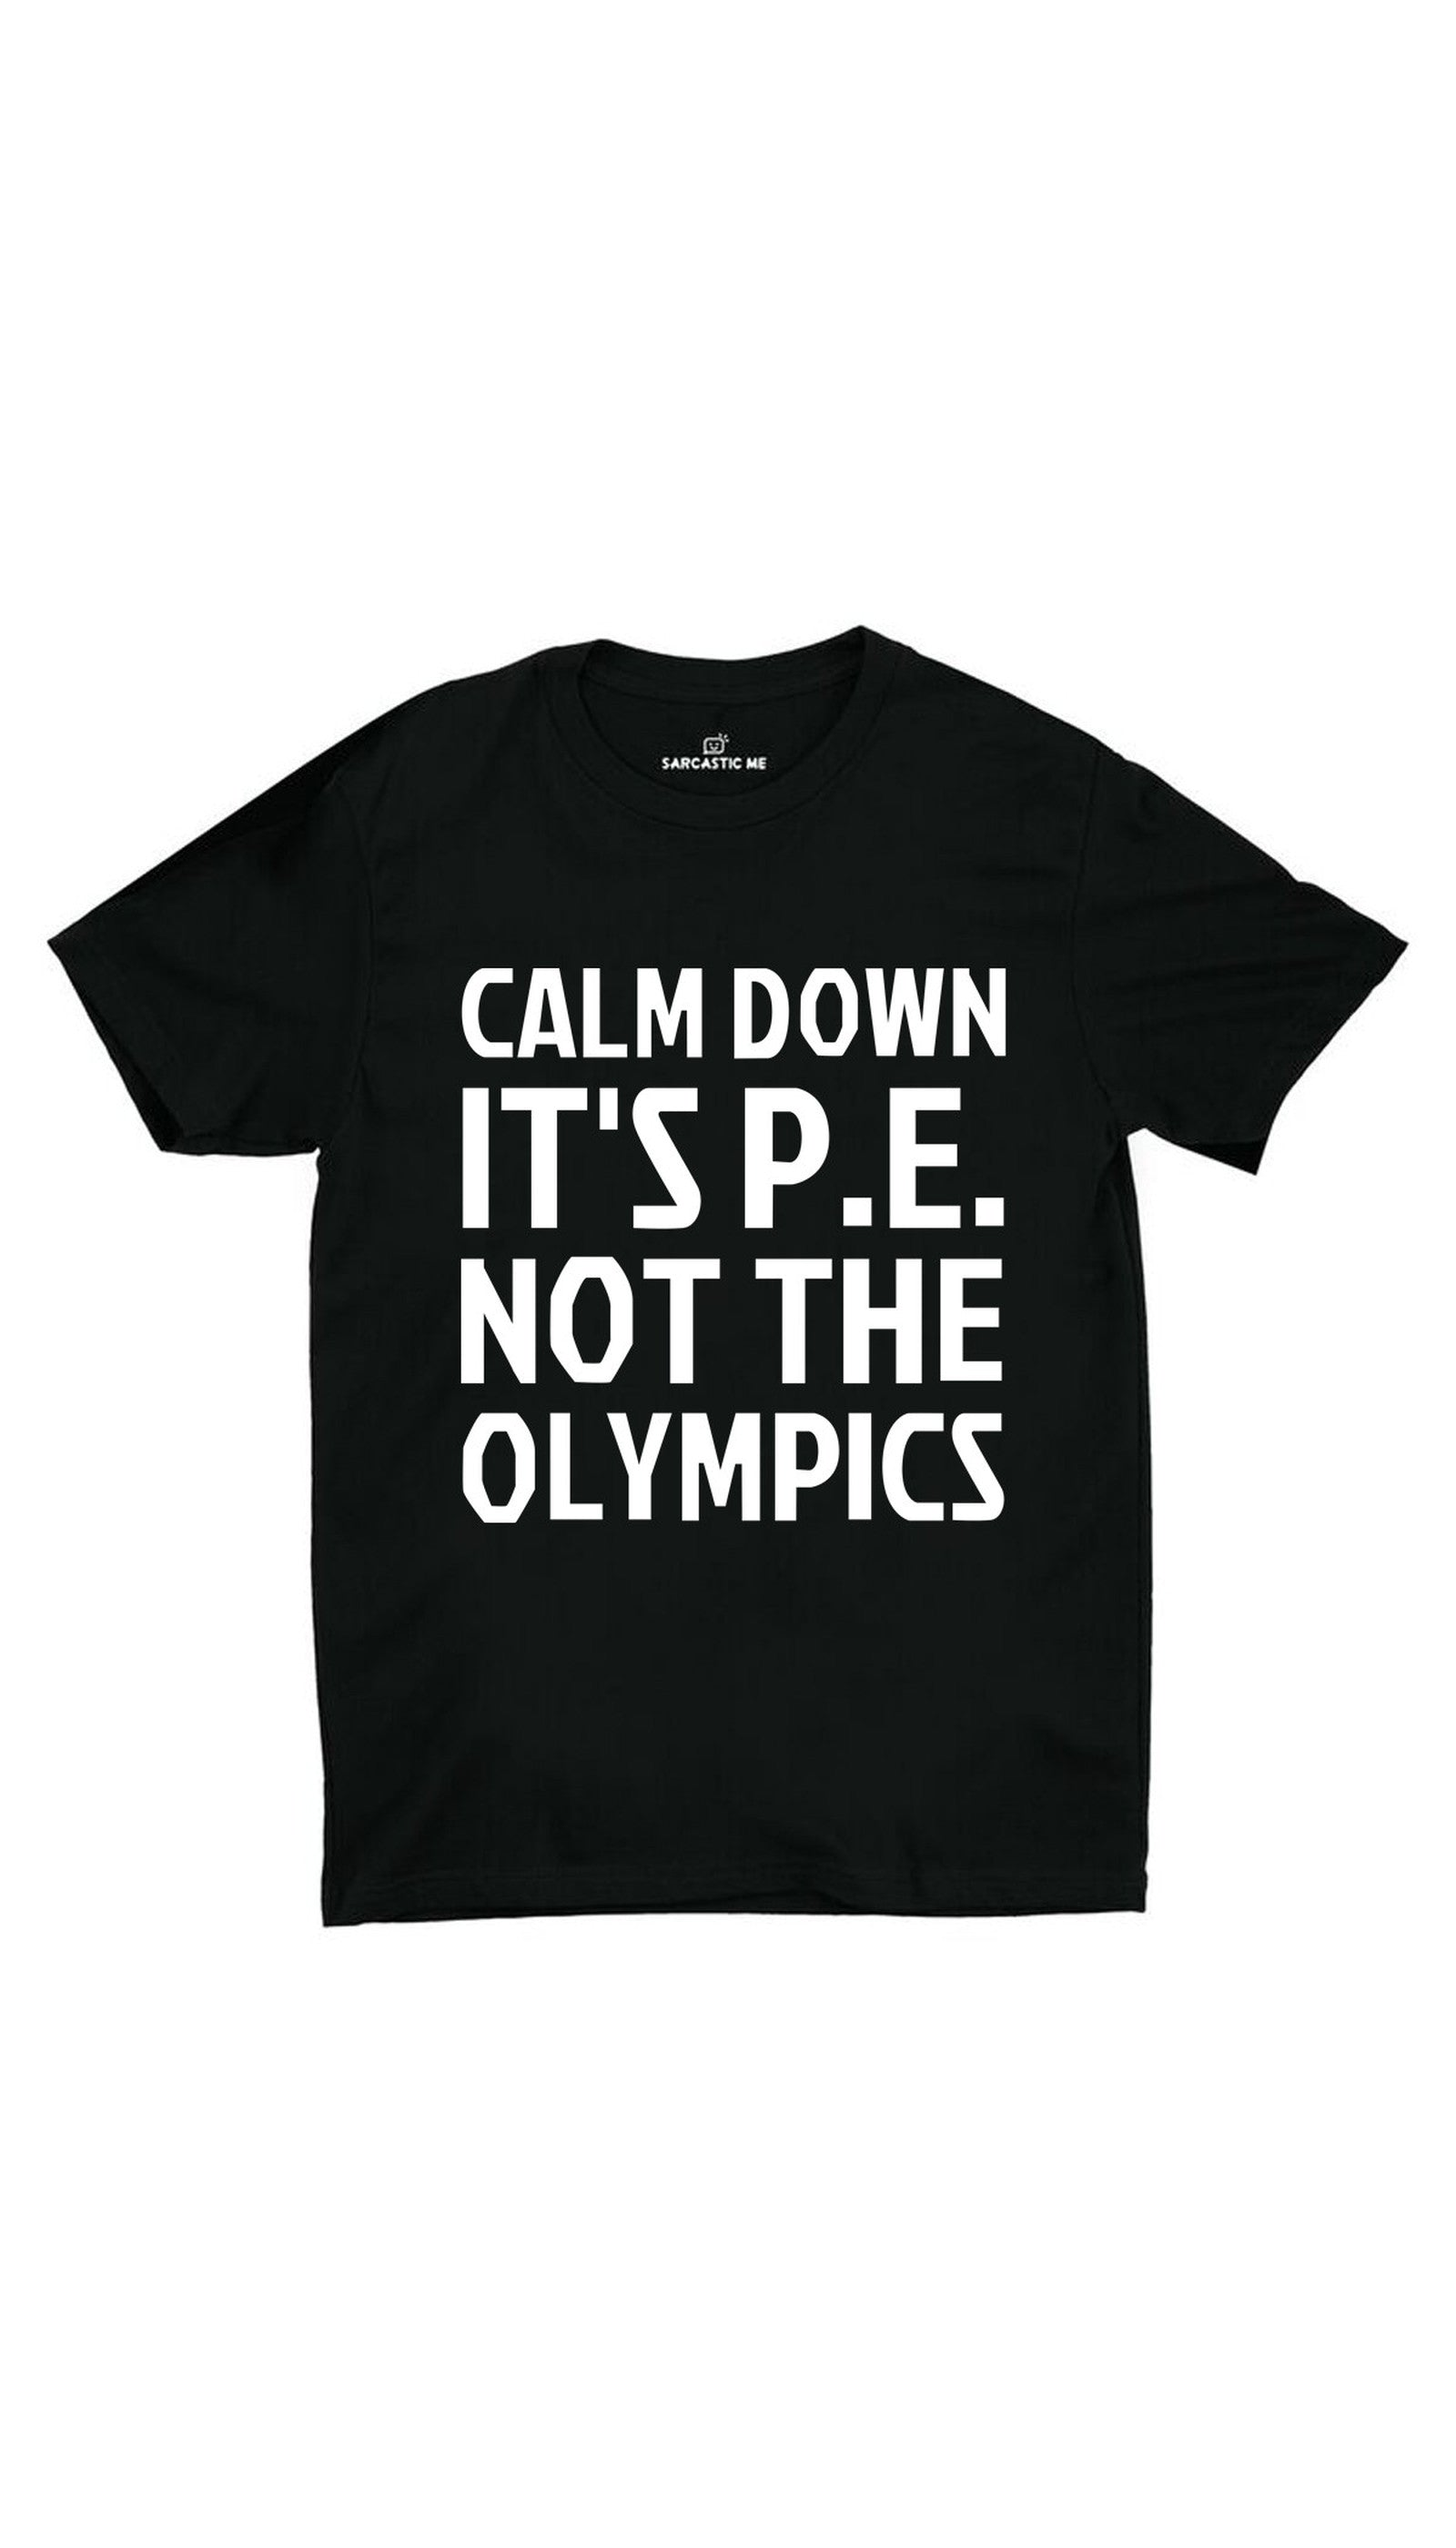 Calm Down It's P.E Not The Olympics Black Unisex T-shirt | Sarcastic ME